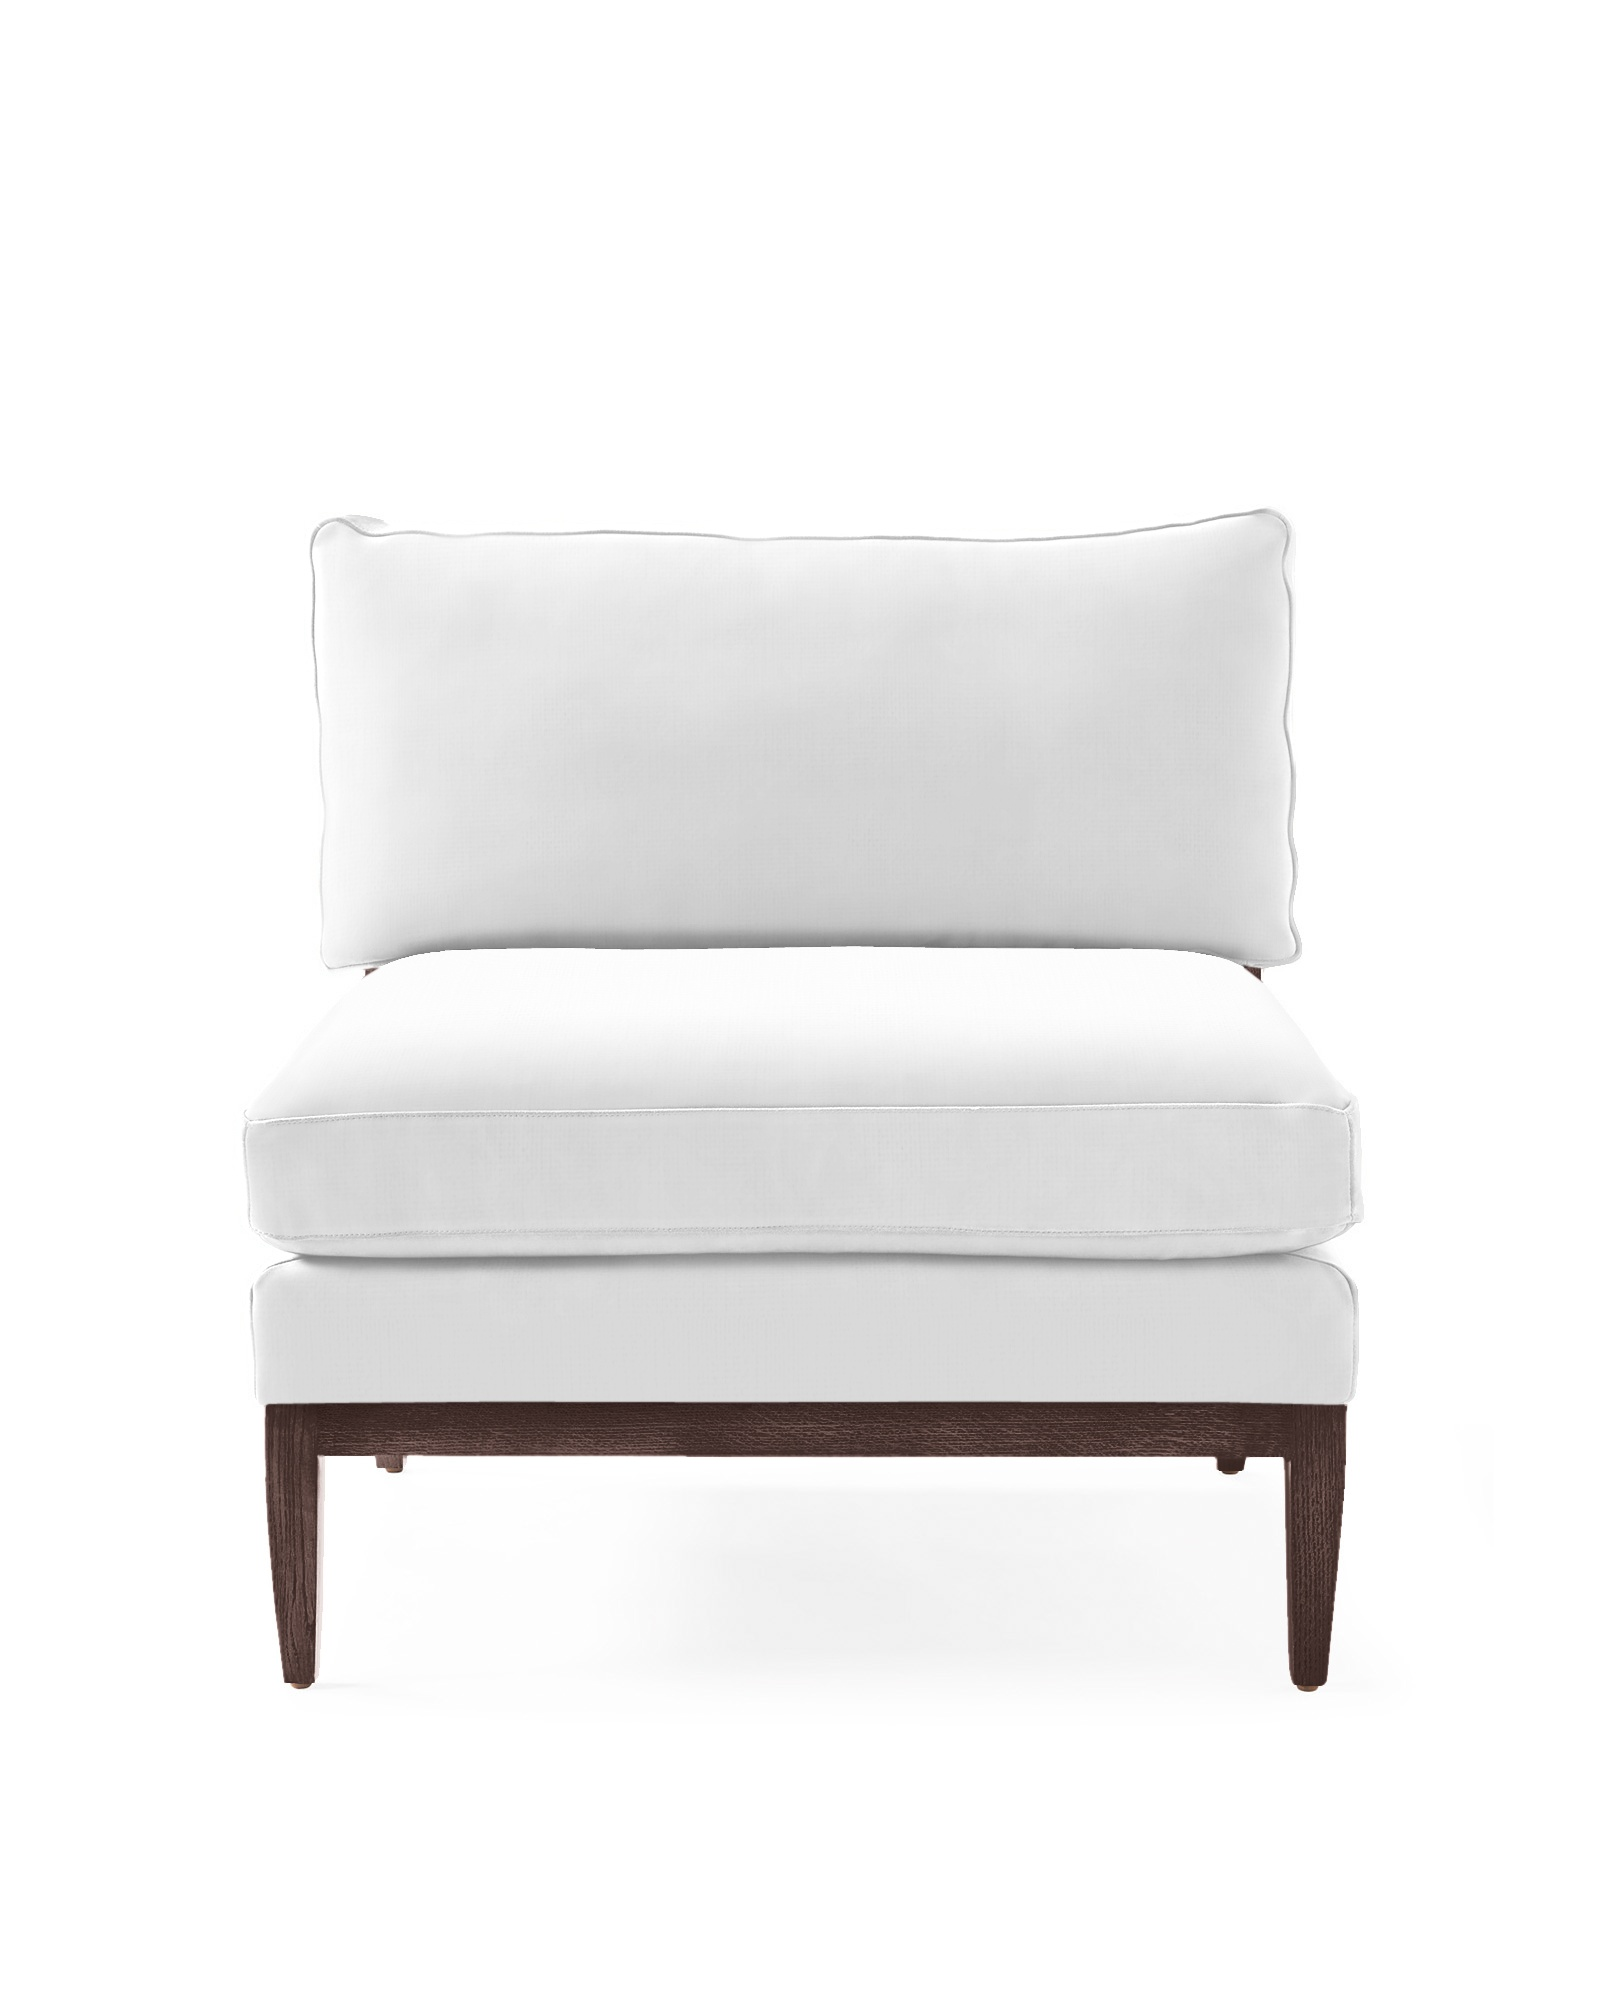 Lakeshore Chair - Serena & Lily